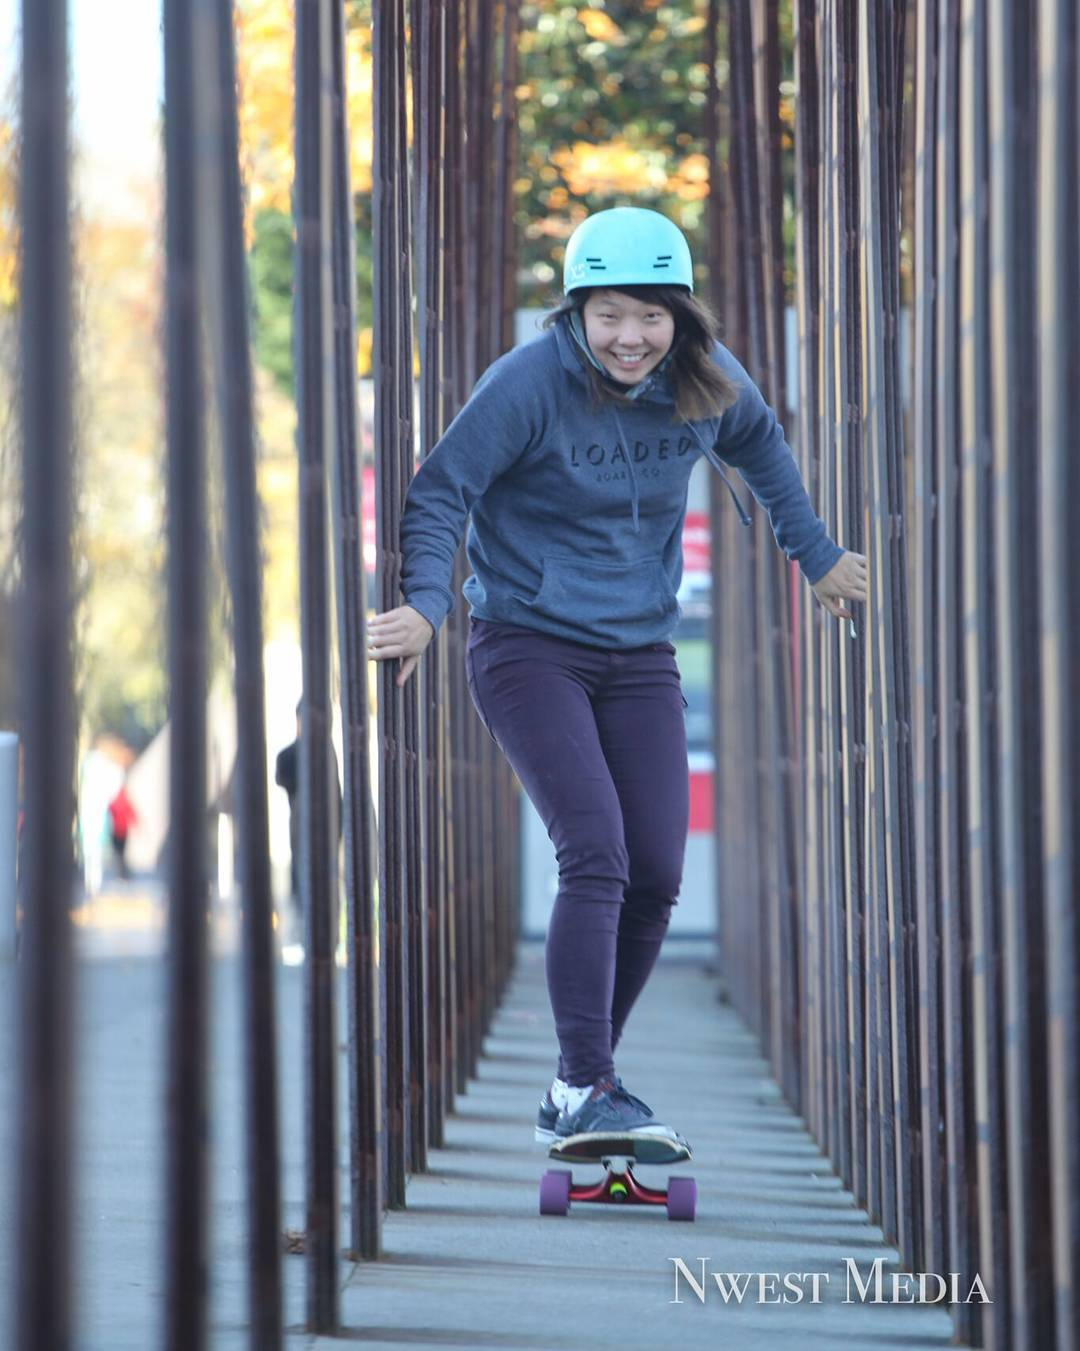 #LoadedAmbassador @iamcindyzhou threads the needle in her new #LoadedBoards Hoodie on a rare dry day in seattle.  Photo: Nwest Media  #Tesseract #LoadedHoodie